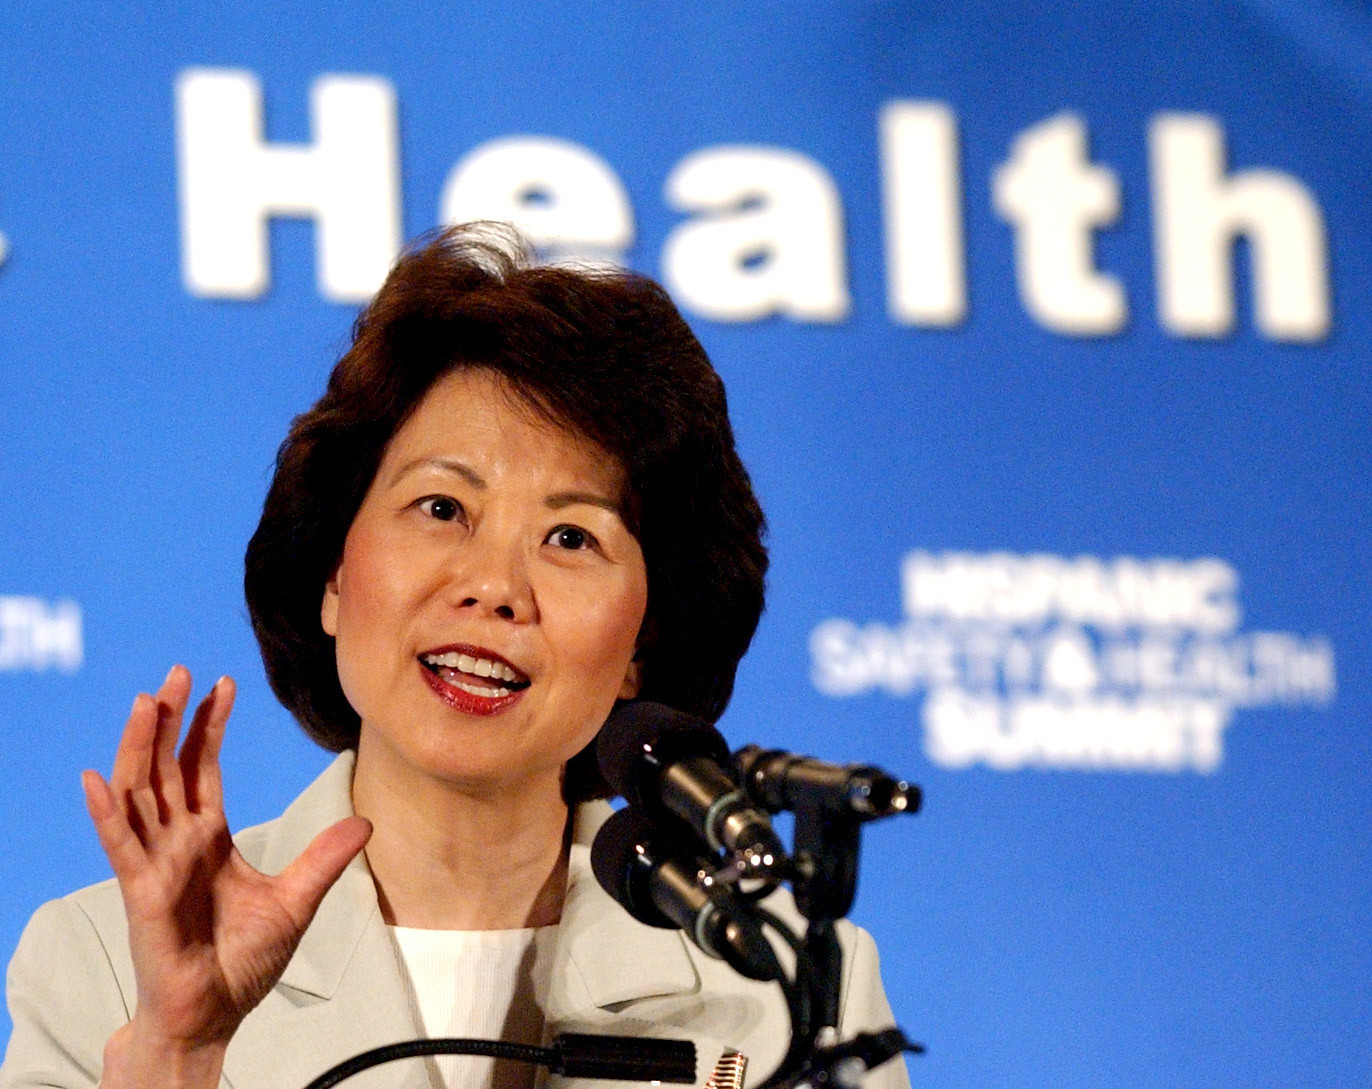 Pictures: Cruise ship godmothers - Former U.S. Labor Secretary Elaine Chao